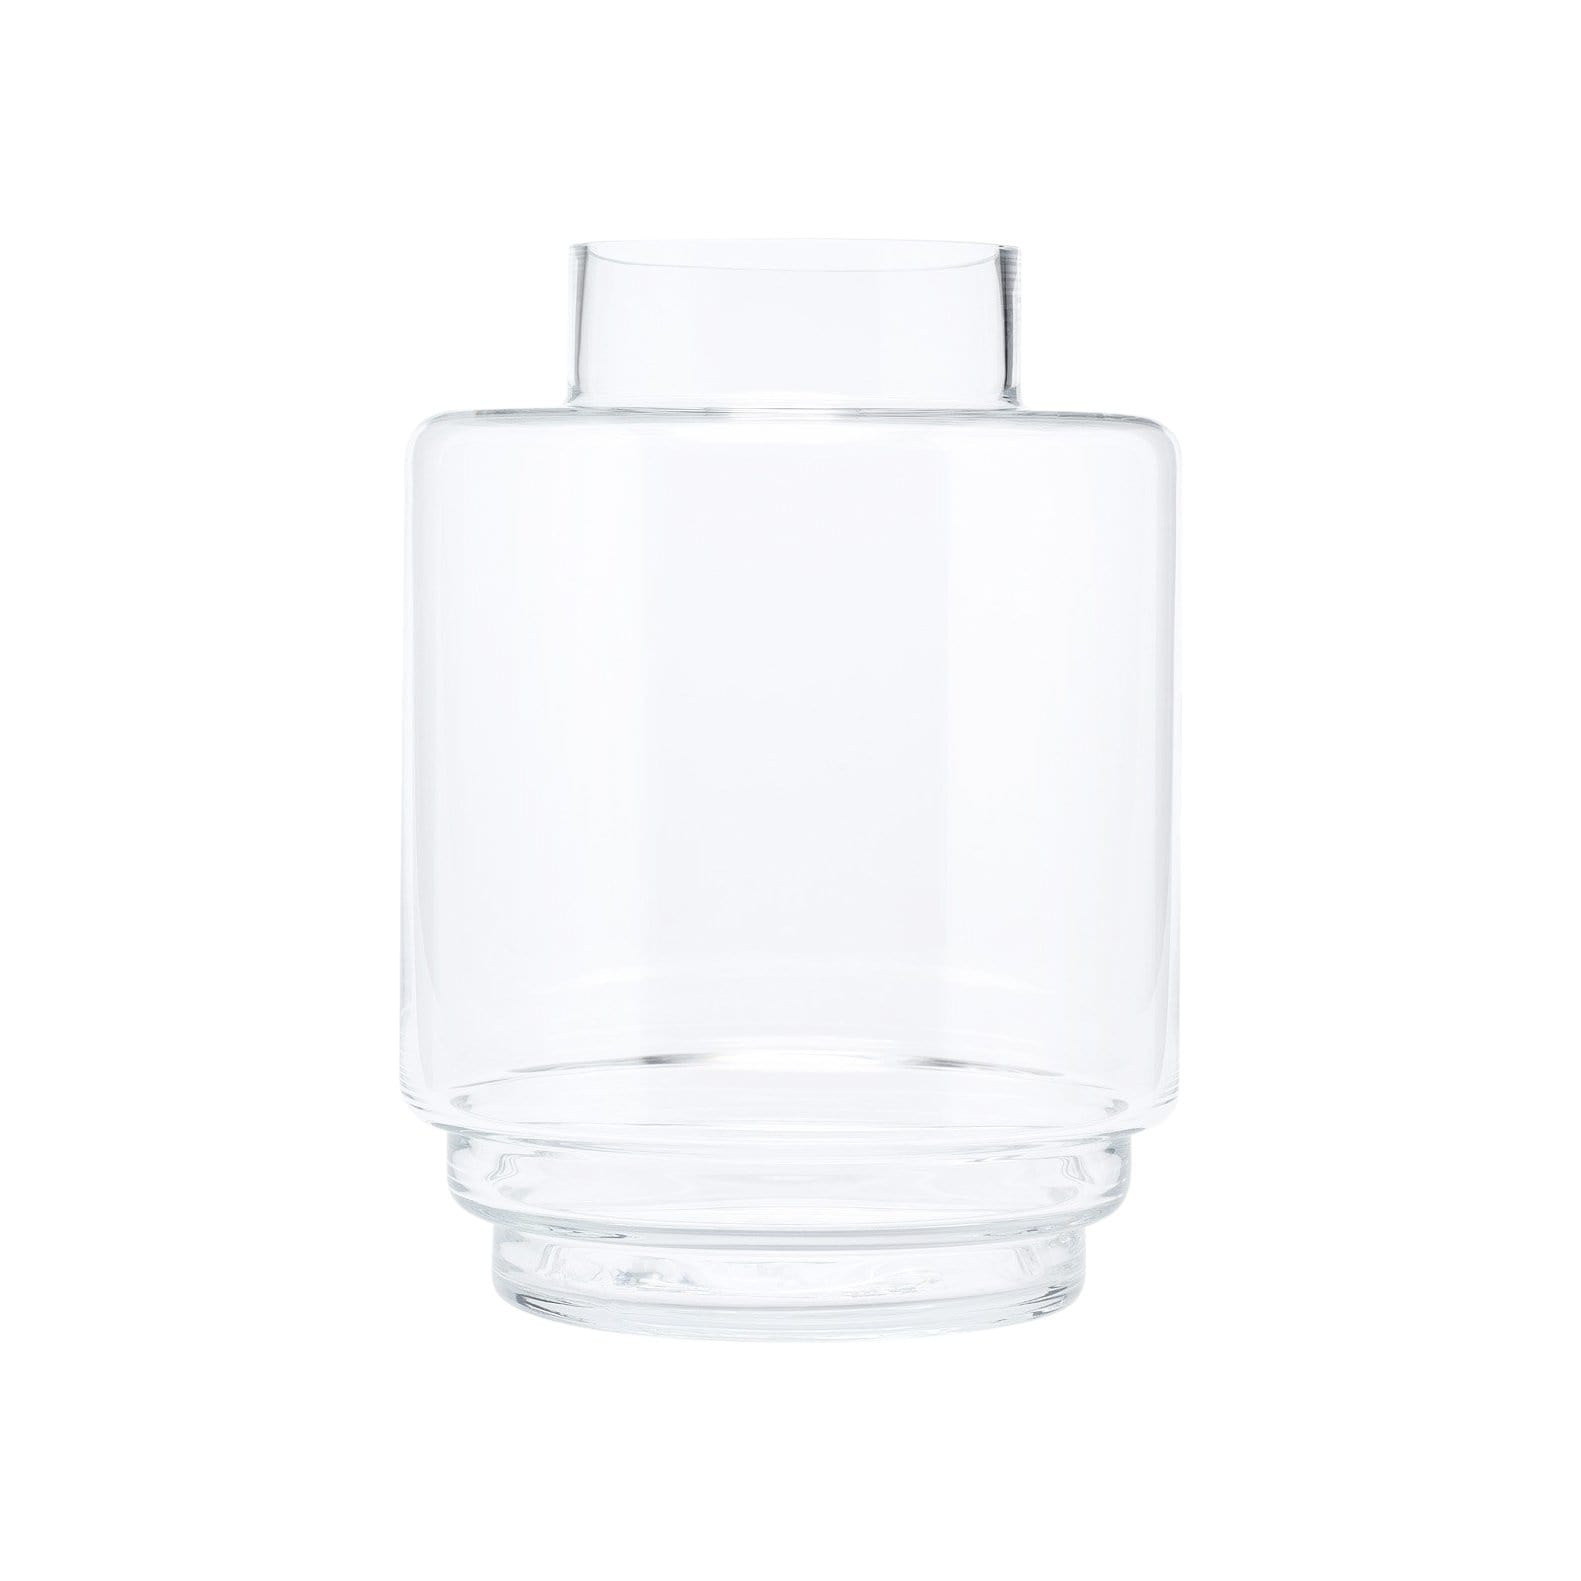 Puik Design Accessories Monday Glass Vase